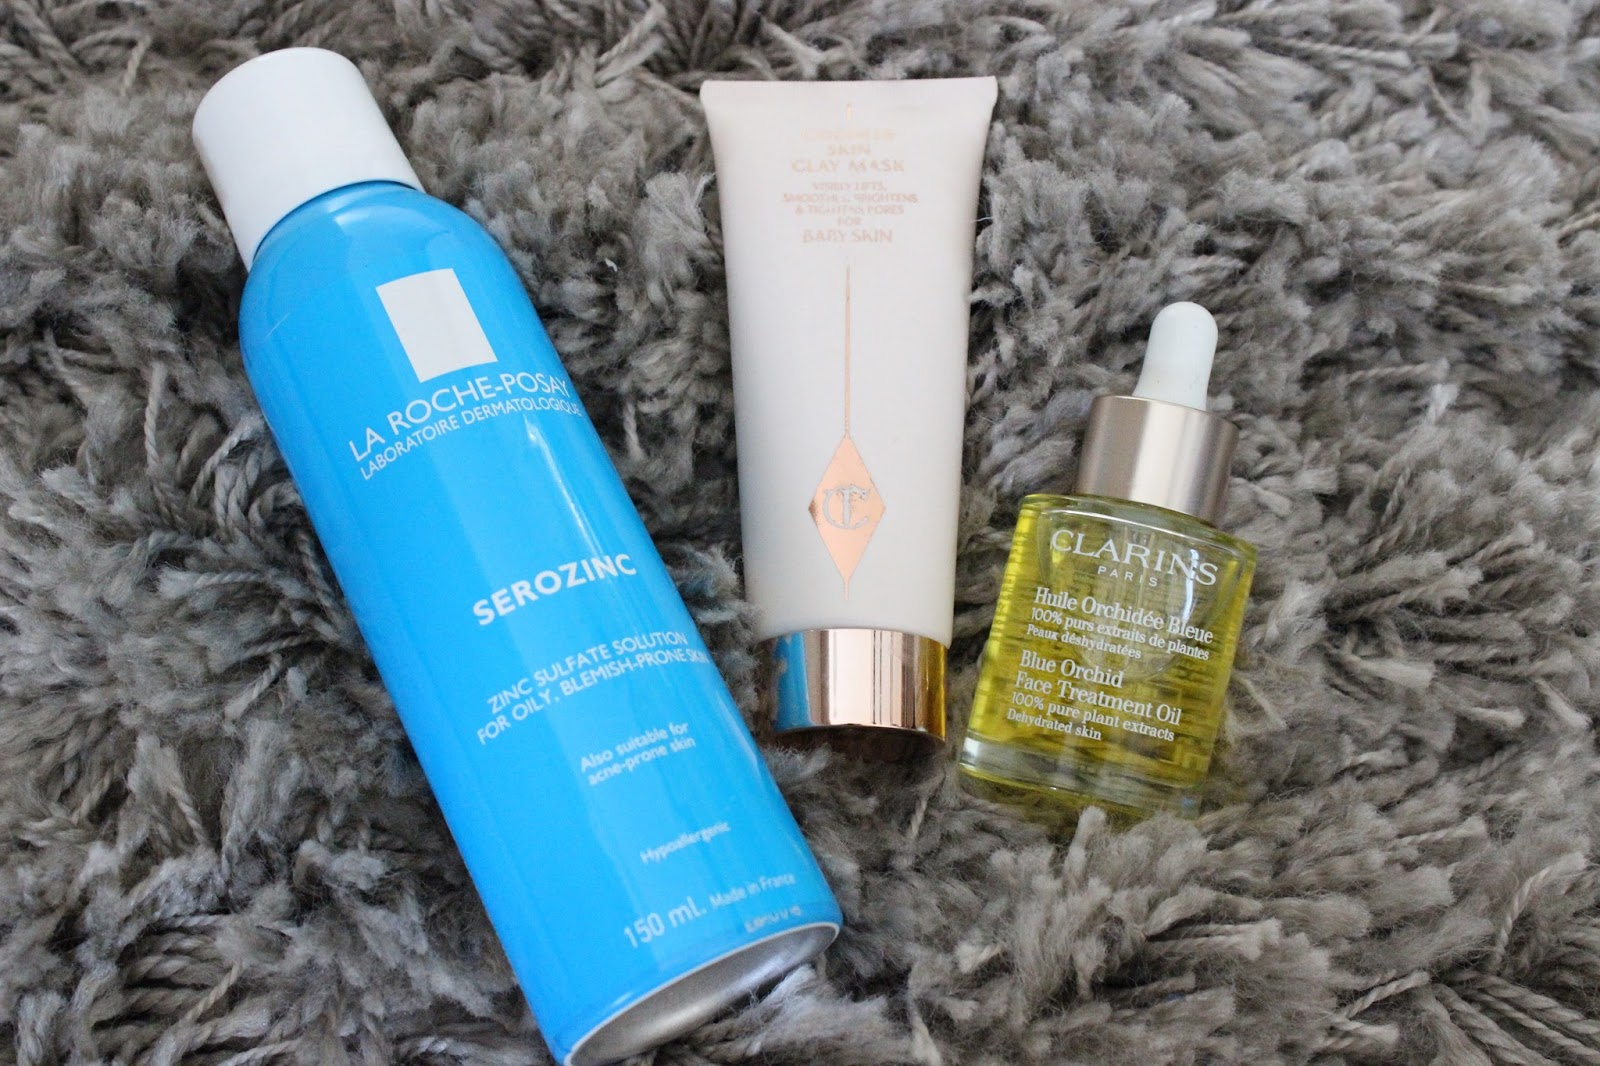 Skincare Wonders - La Roche Posay Serozinc, Clarins Blue Orchid Face Oil, Charlotte Tilbury Goddess Skin Clay Mask